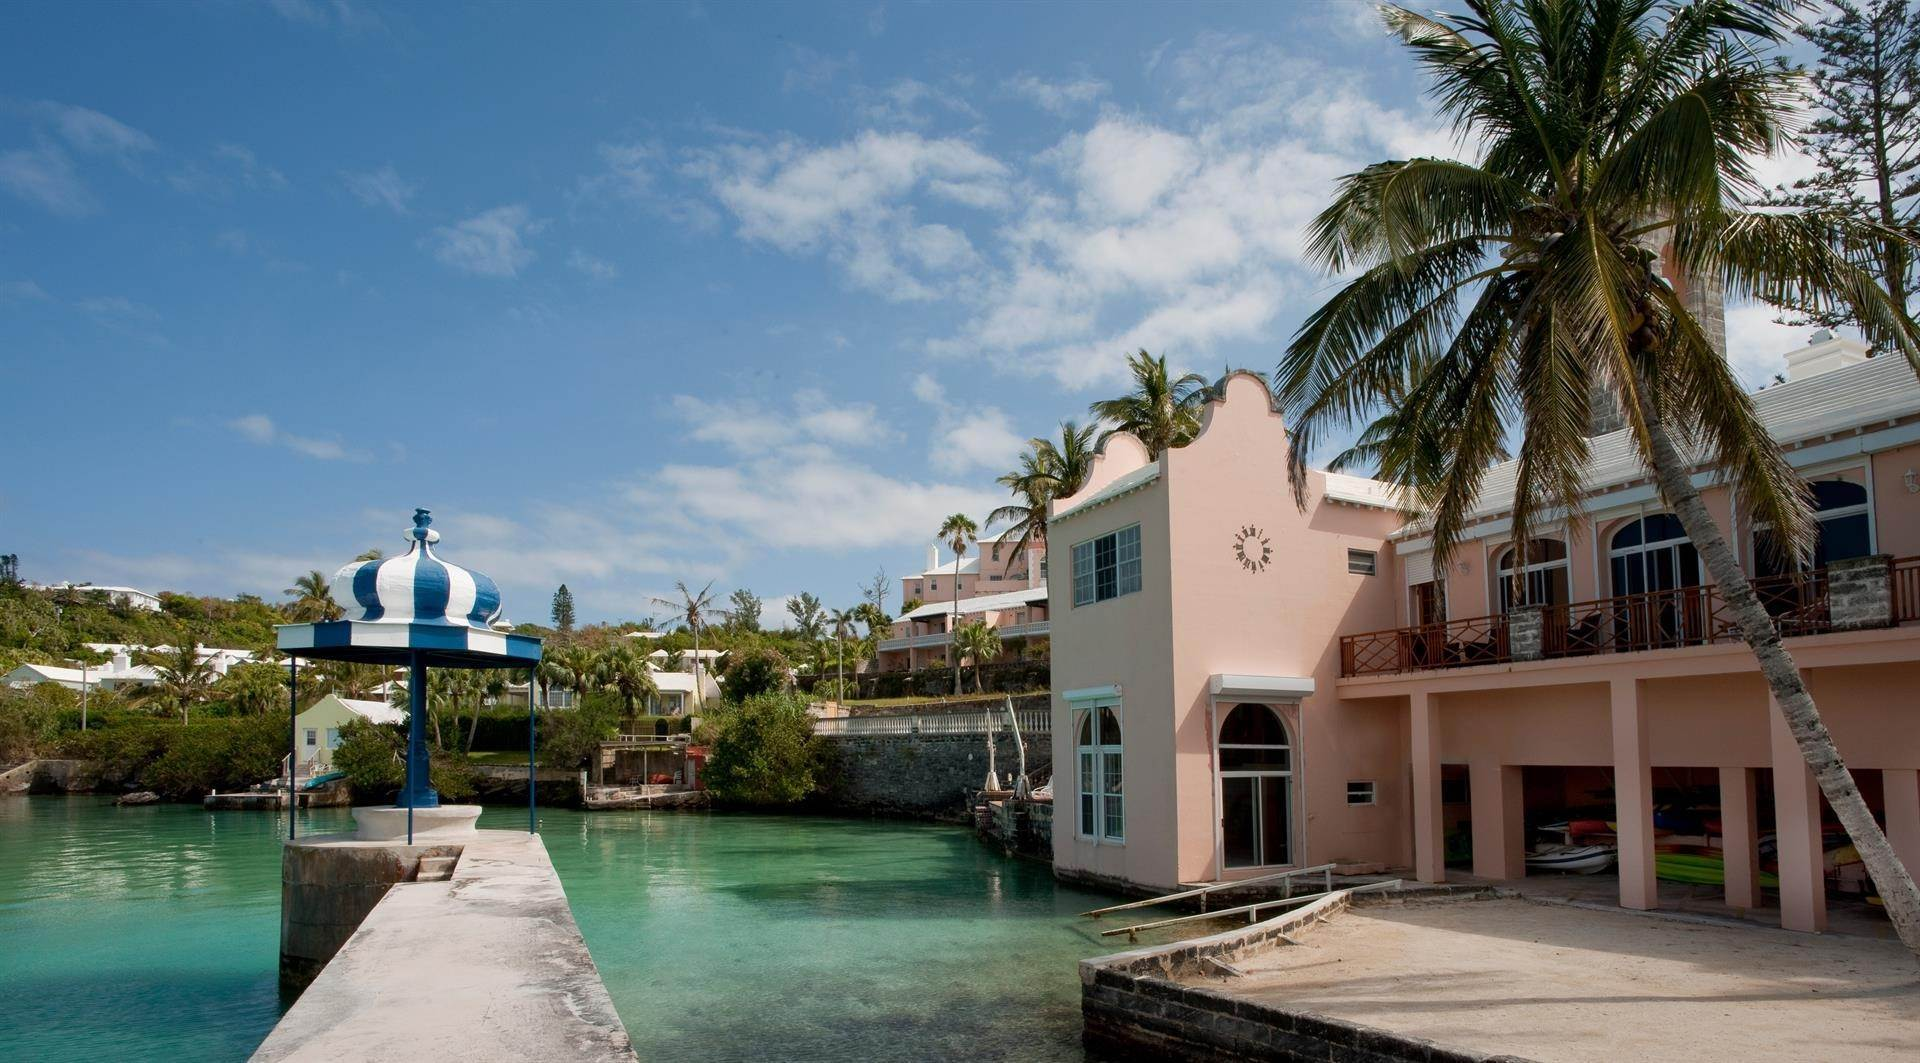 Condominium por un Venta en The Boat House On Harrington Sound 7 Harrington Sound Road Smith's Parish, Bermuda,FL07 Bermuda